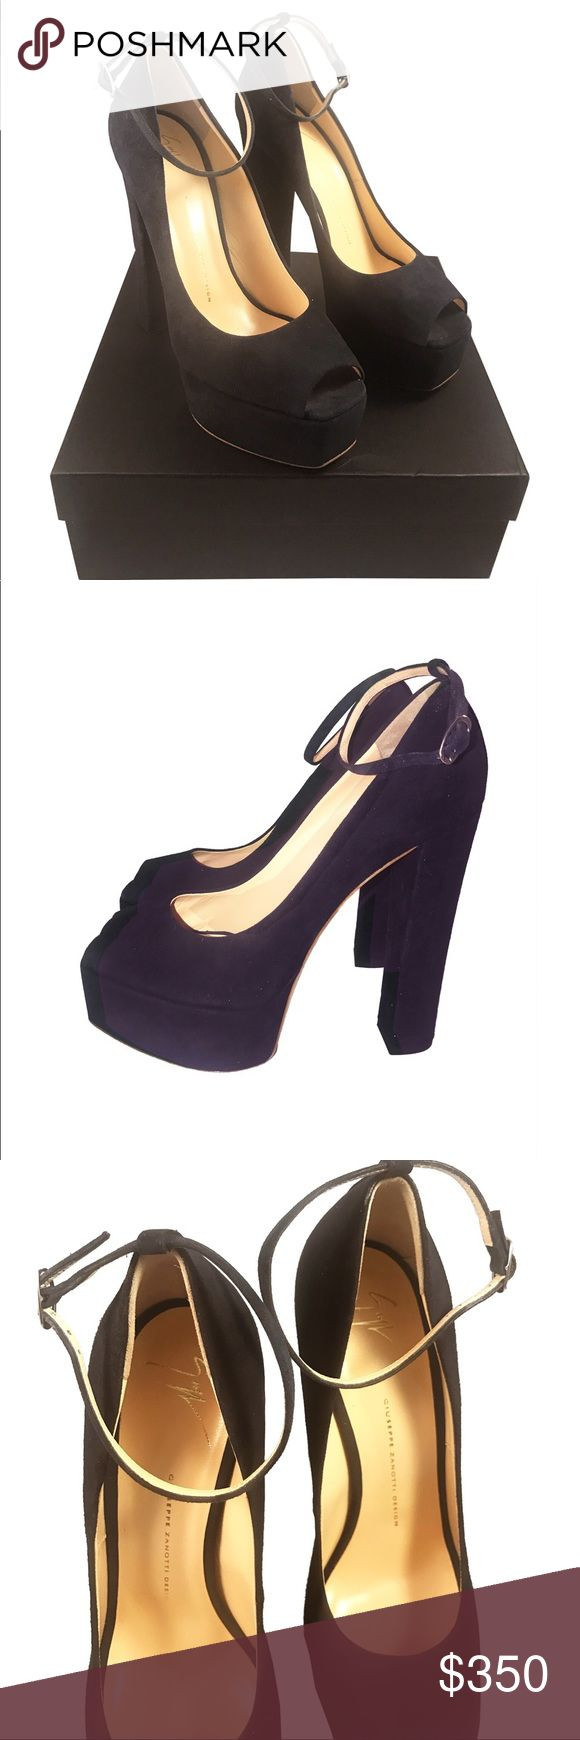 """Giuseppe Zanotti Suede Peep-Toe Pump Size 41 New with box.  Size 41.  Fits like a US 10 or 10.5,  however, know your Giuseppe Zanotti size prior to purchase as no returns will be given for incorrect size.  Has been tried on and handled in store.  Please see photographs for details.    Thanks for looking! Final sale, no returns.   Giuseppe Zanotti suede pump. 4"""" covered heel with platform. Peep toe. Adjustable ankle strap. Lightly padded footbed. Smooth outsole. Made in Italy. Giuseppe…"""